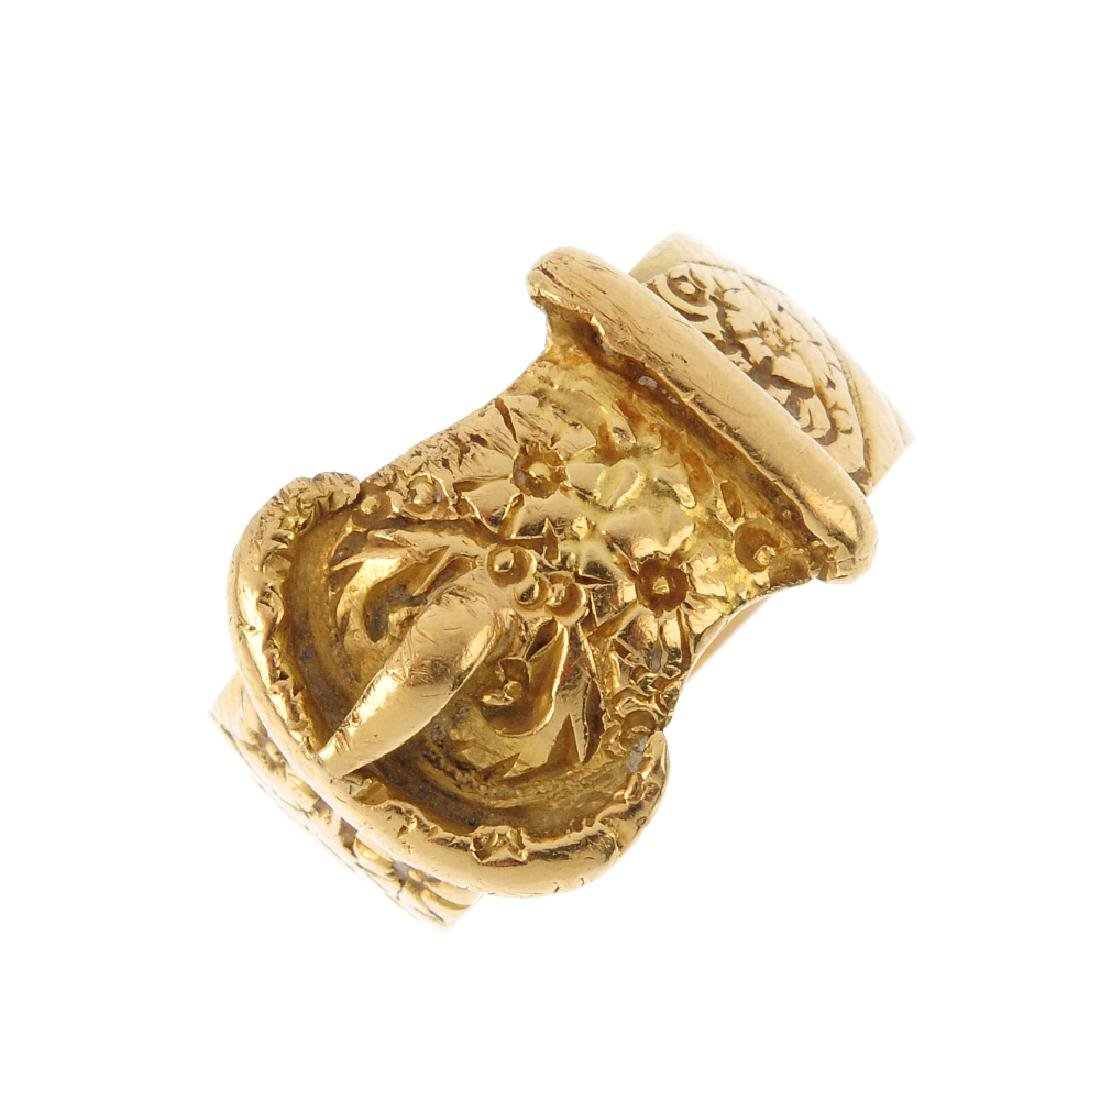 An early 20th century 18ct gold buckle ring. The floral